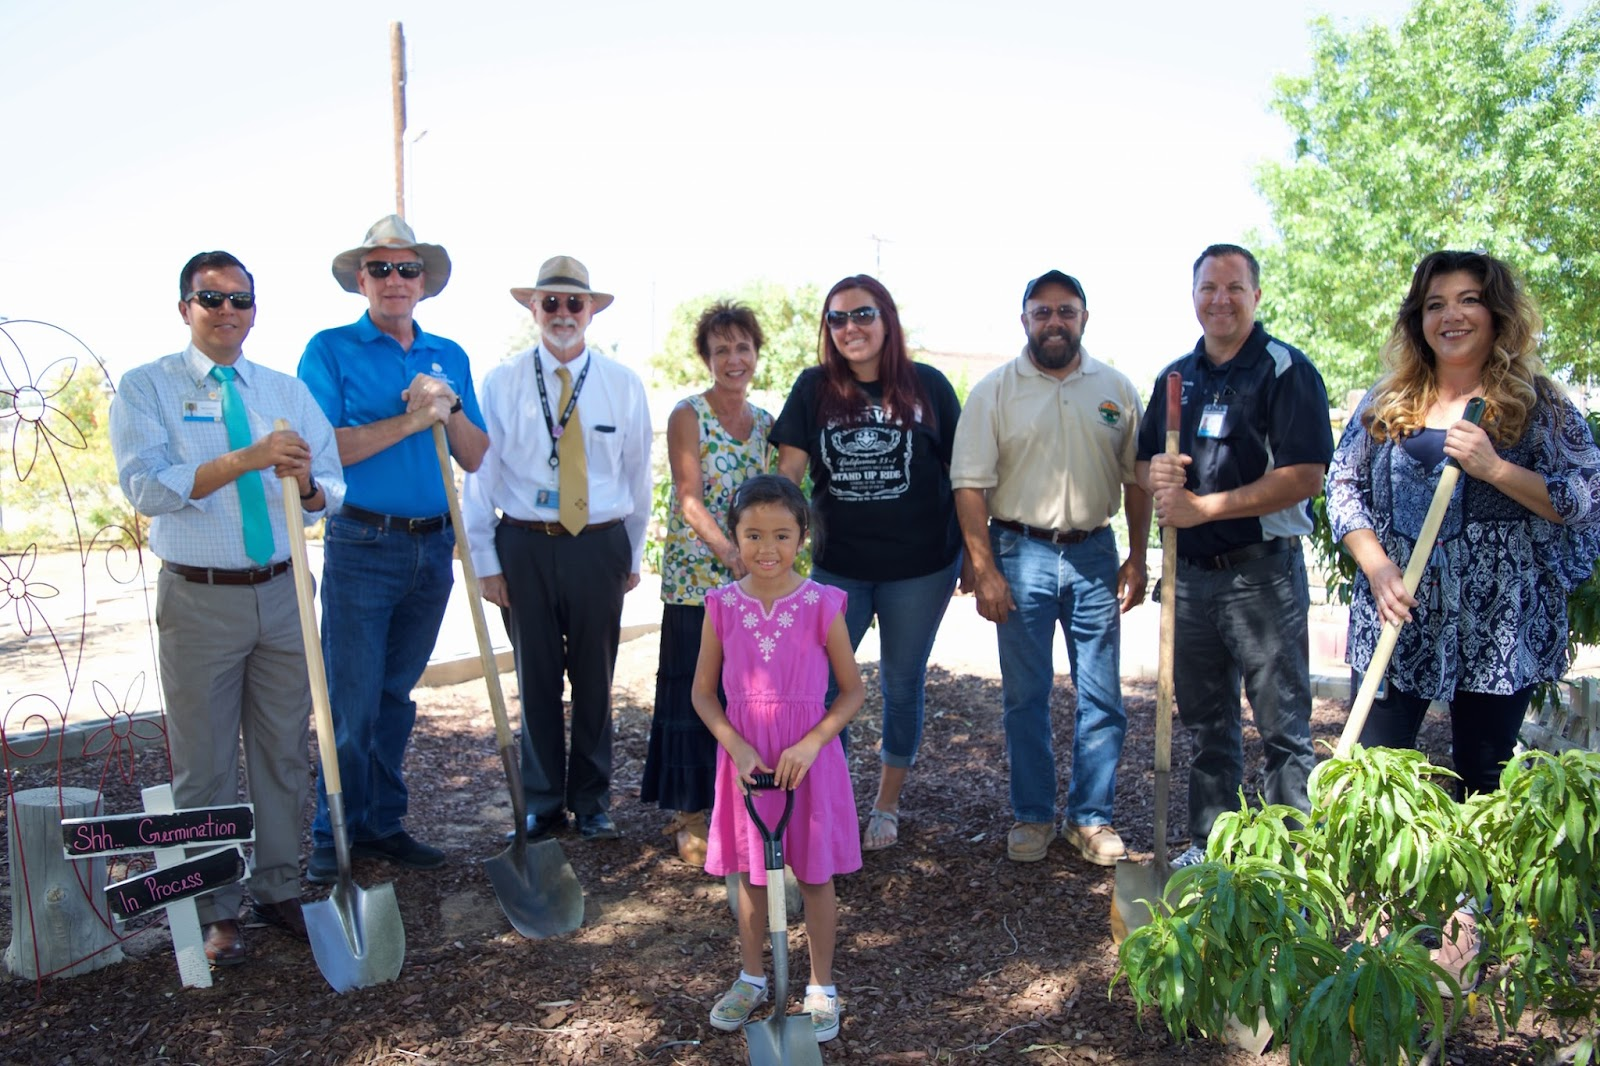 Yucca Valley Breaking News >> YUCCA LOMA ELEMENTARY CELEBRATES GARDEN RENOVATION AT ...